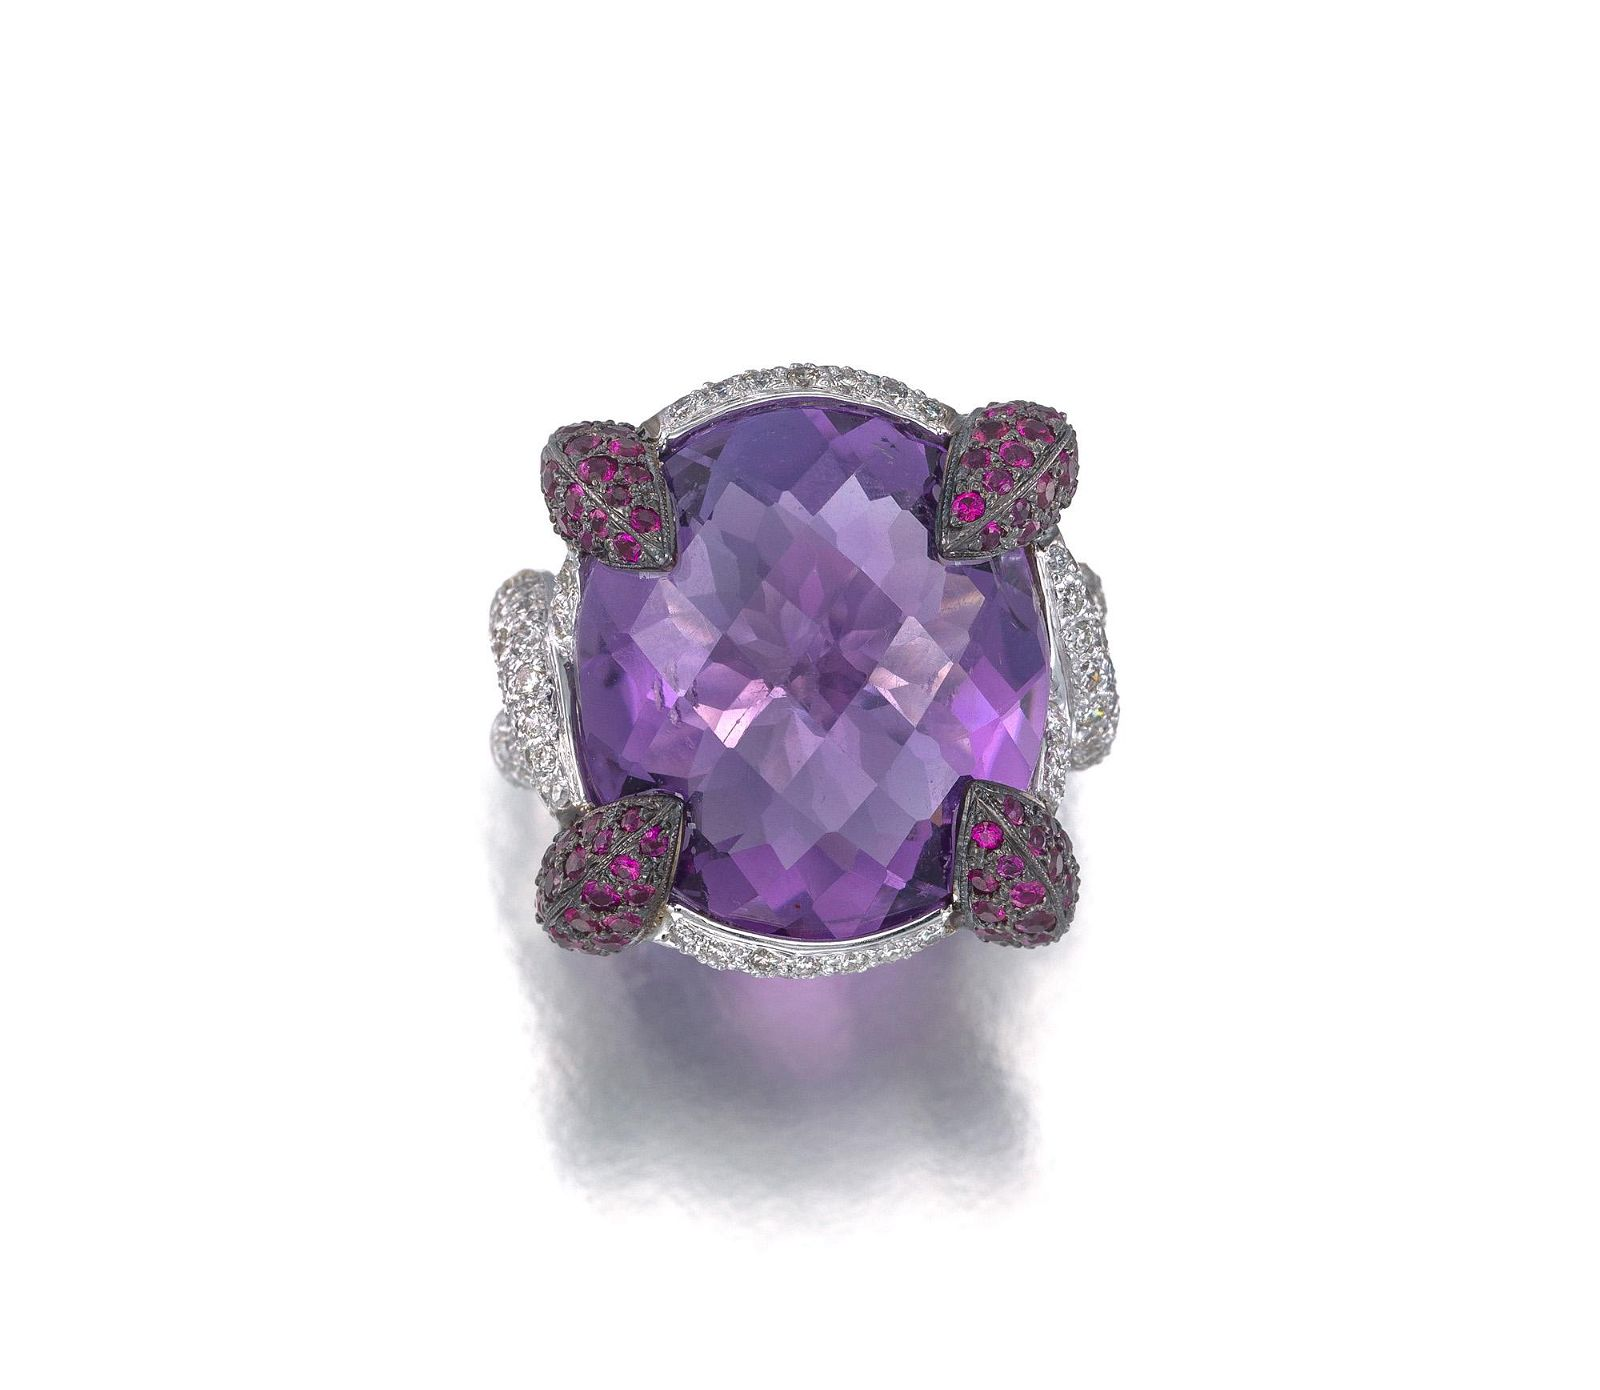 An amethyst, diamond, and ruby ring